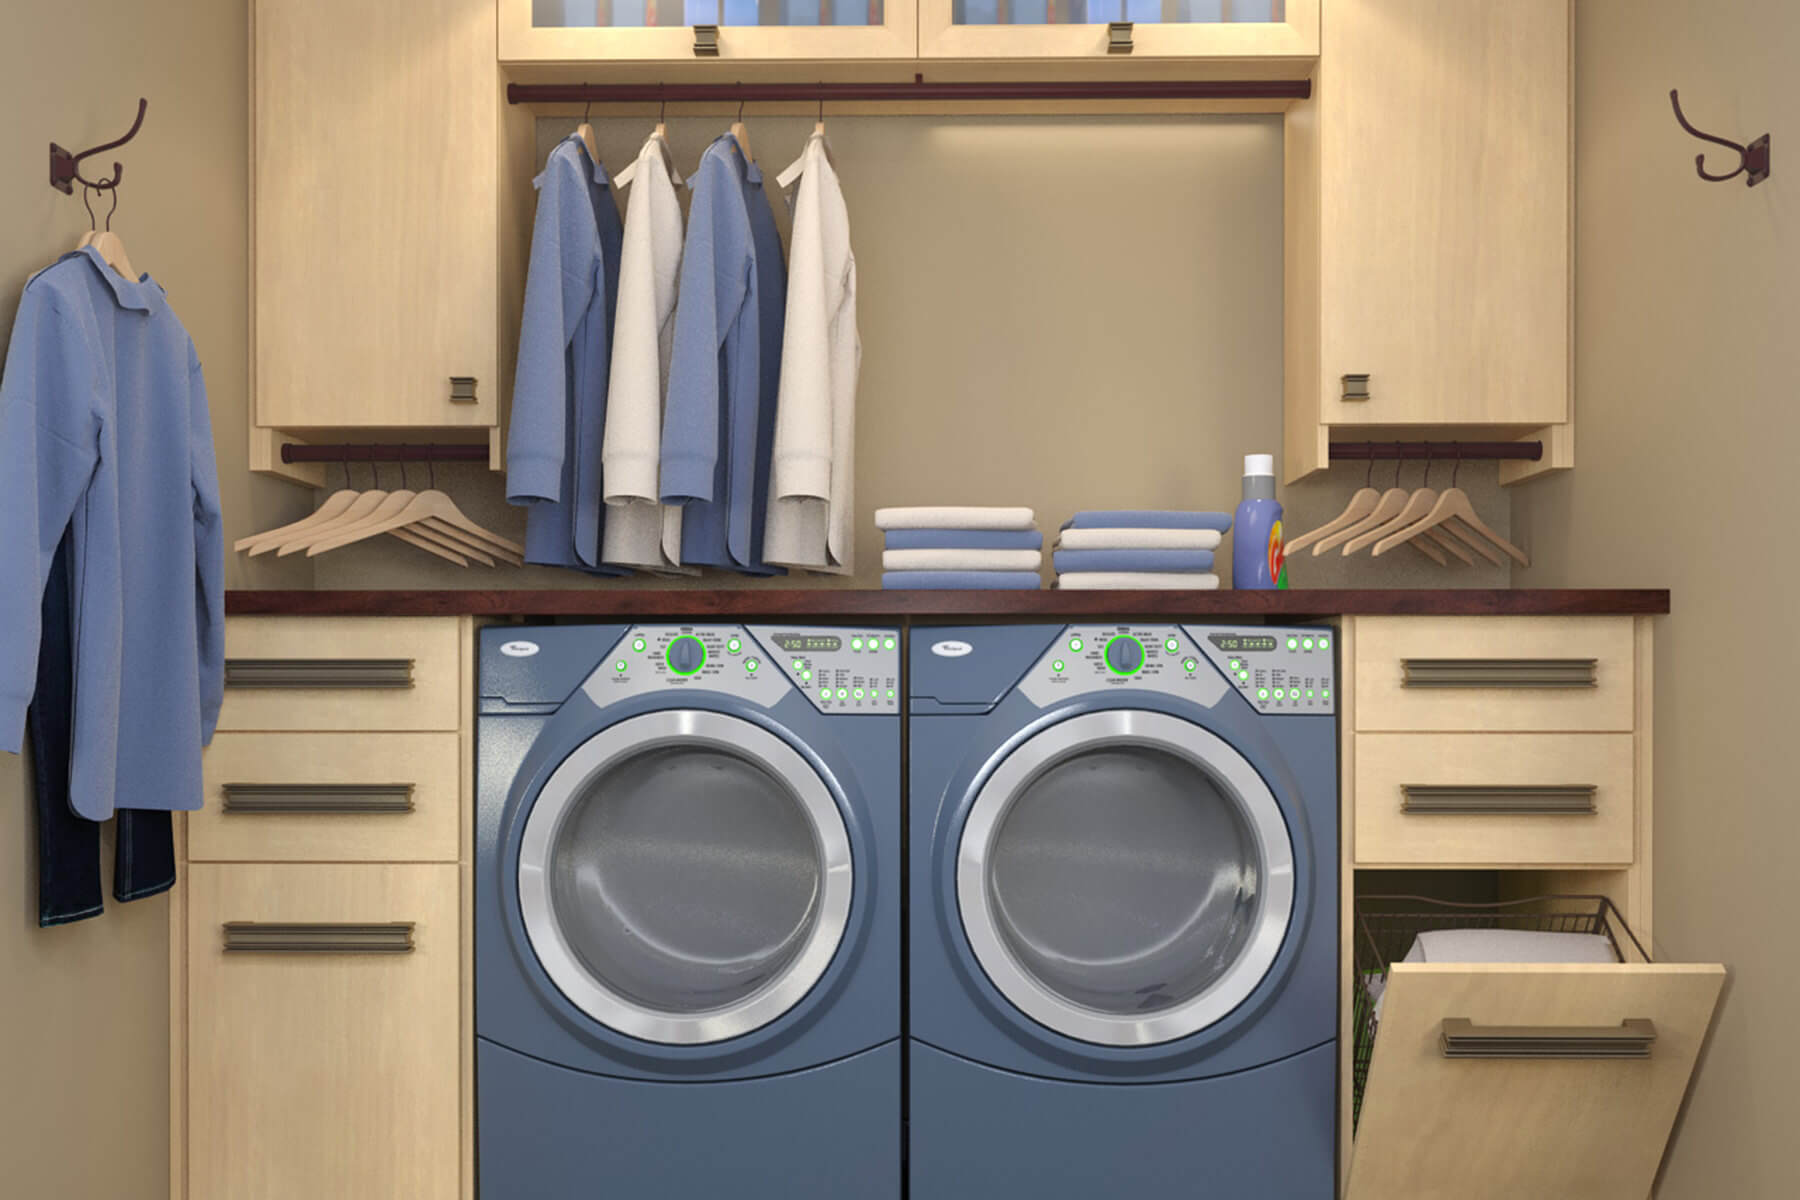 The blueish gray washer and dryer combo look very stylish in this laundry room.